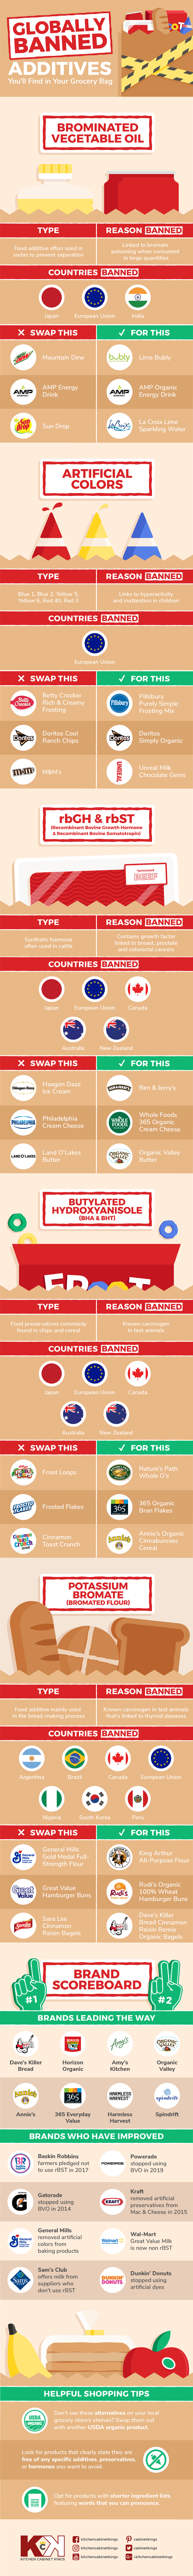 Globally Banned Additives You'll Find in Your Grocery Bag Infographic